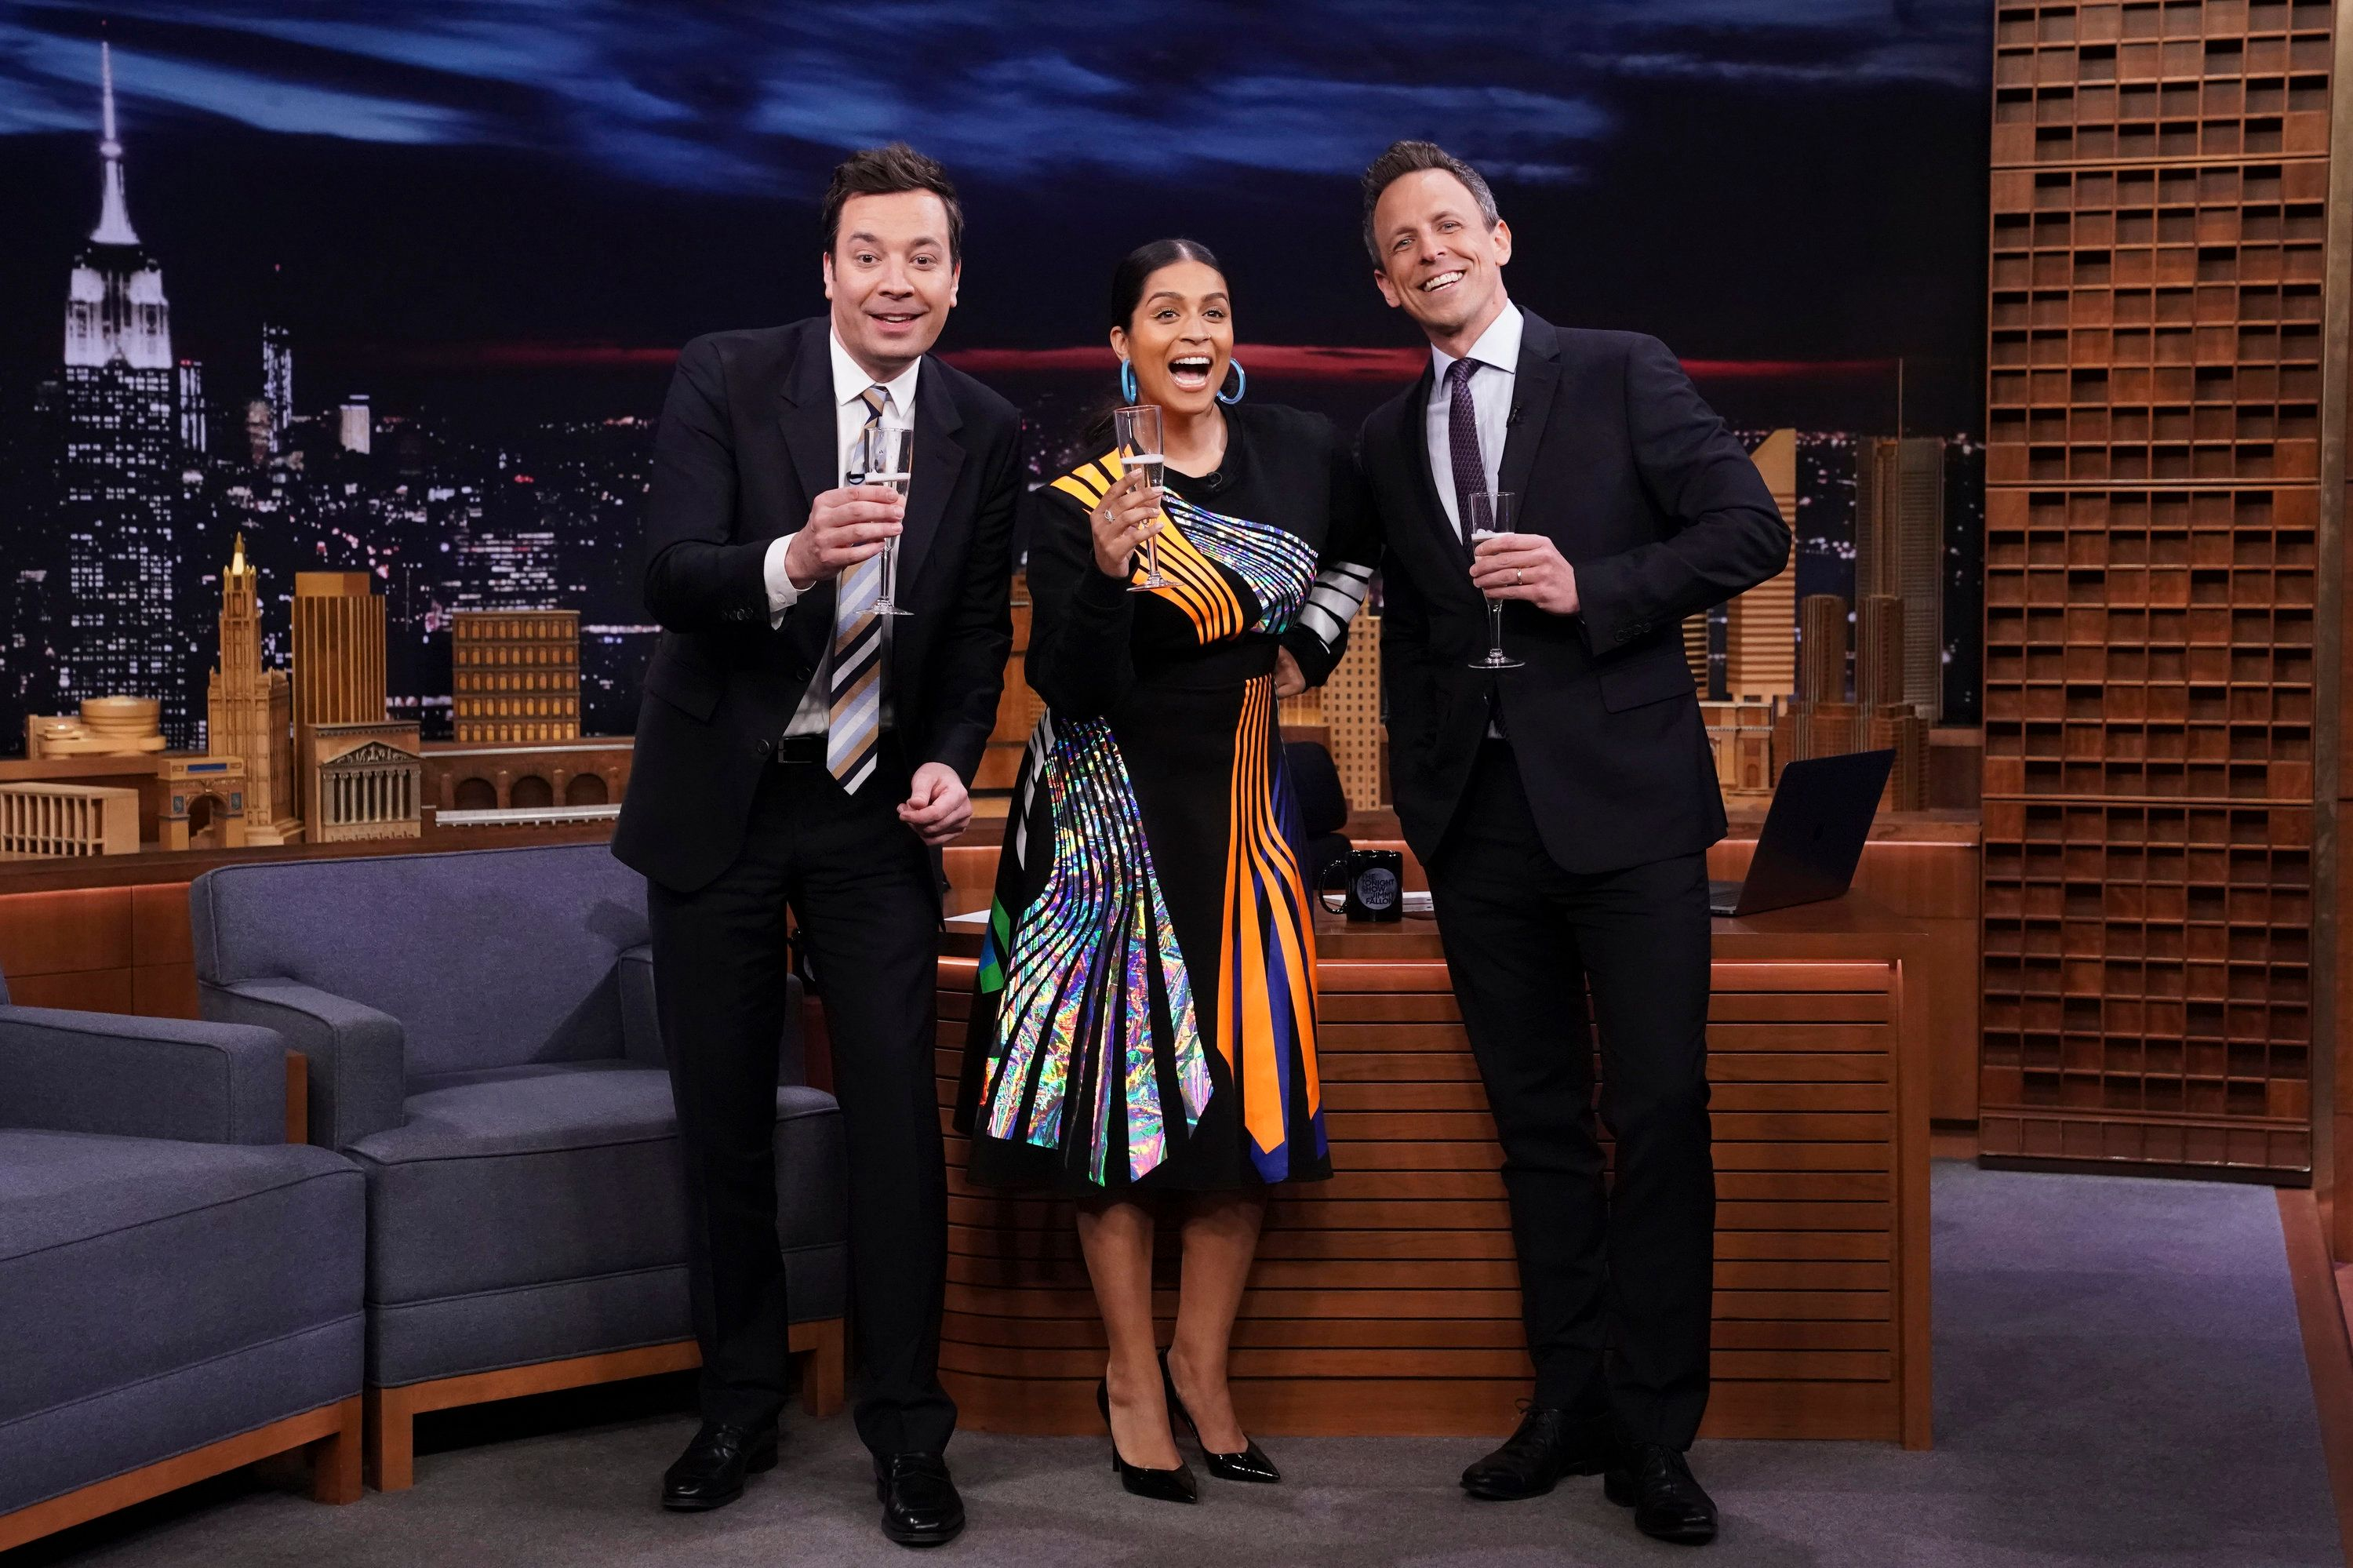 YouTube star Lily Singh to host daily late-night show on NBC